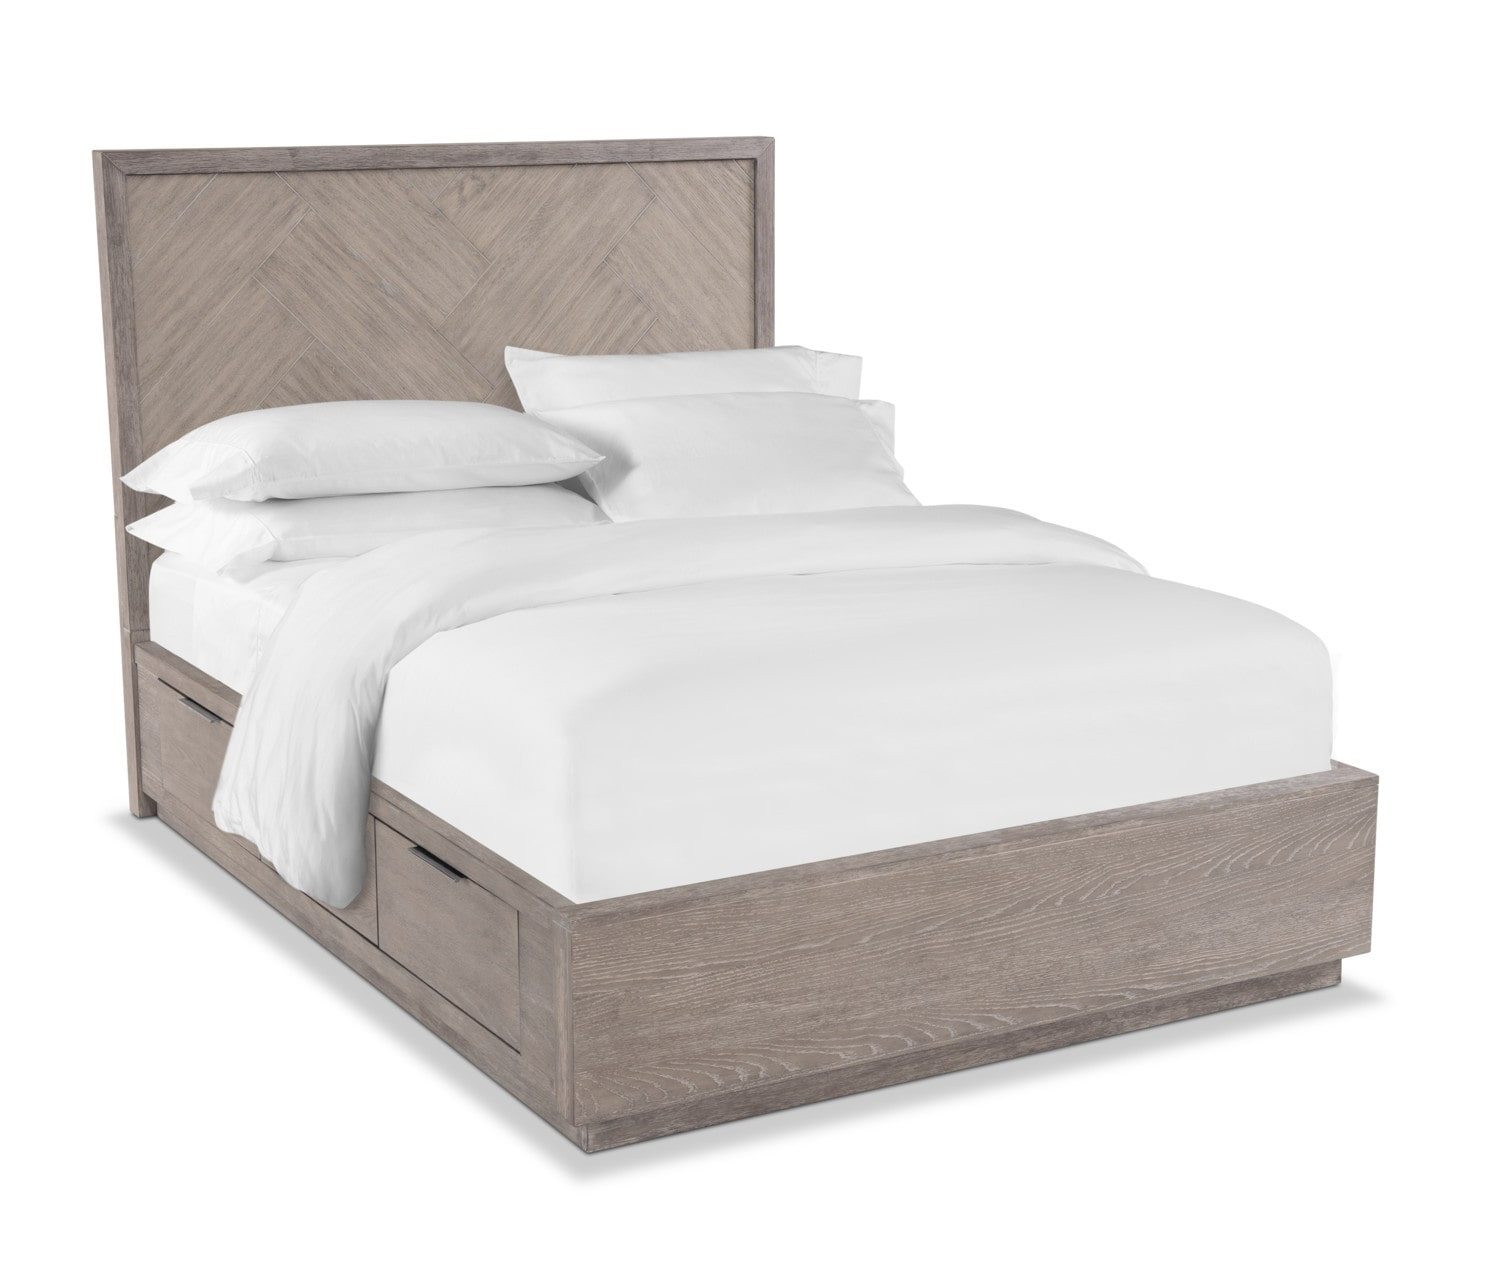 Bedroom Furniture - Zen Queen Storage Bed - Urban Gray